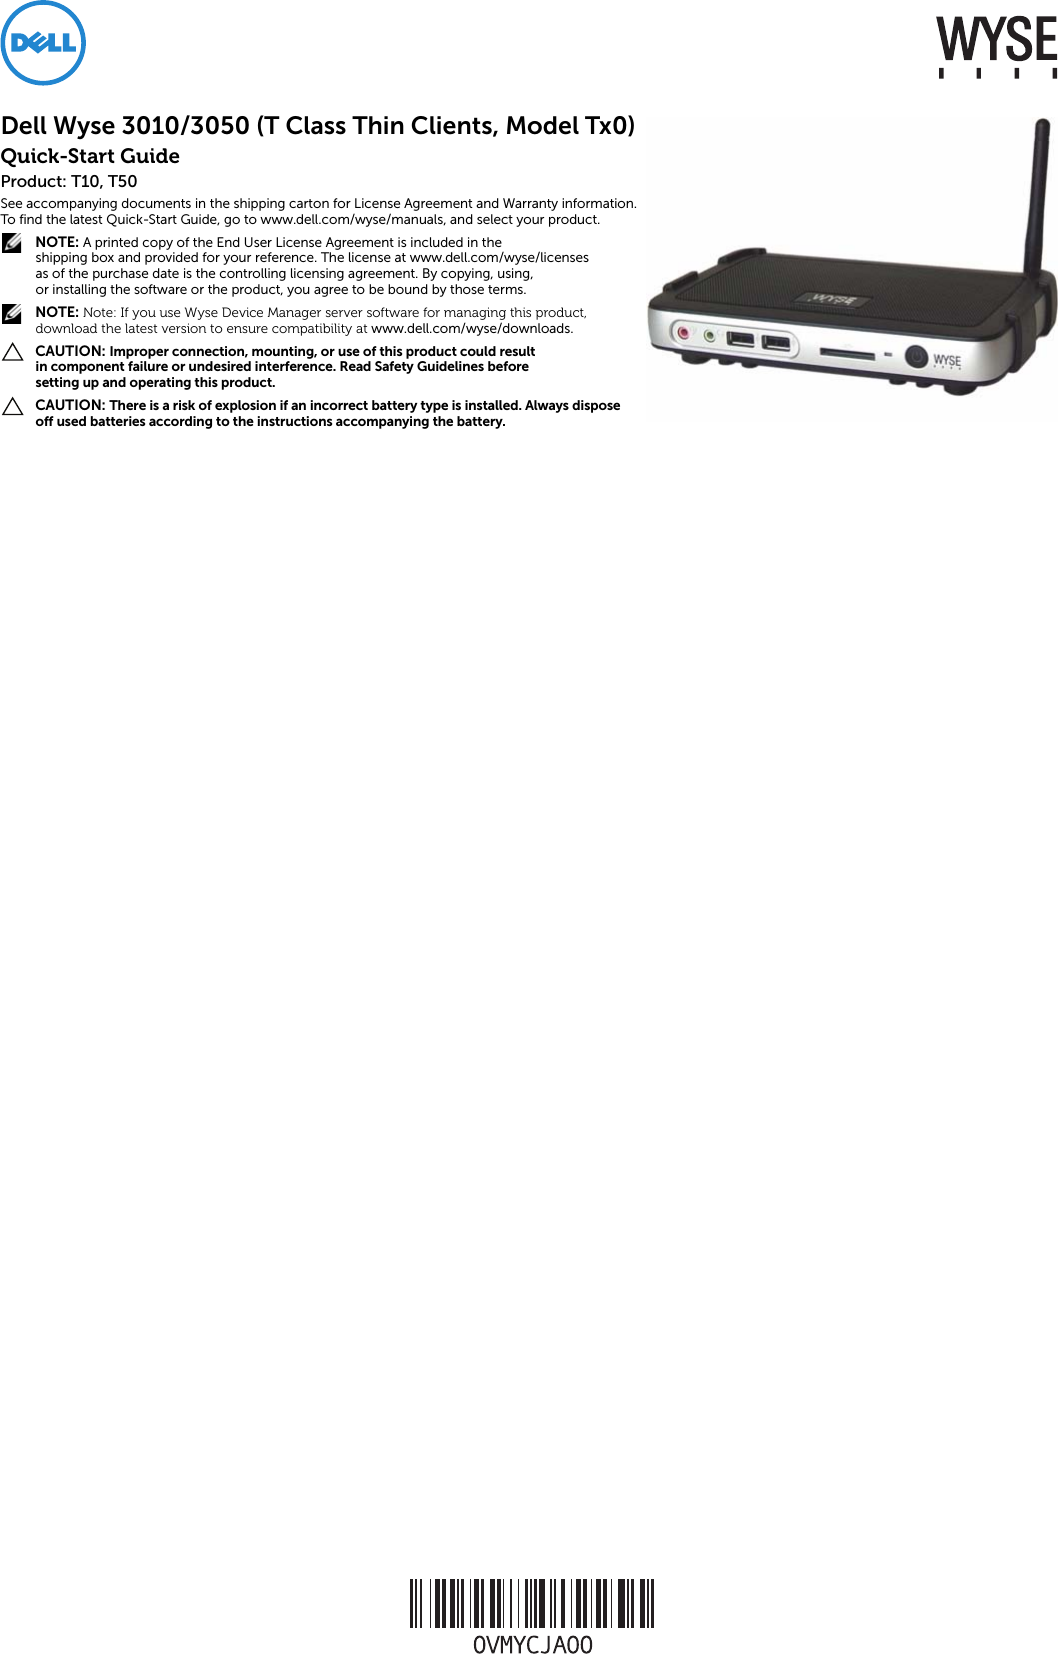 Dell Wyse T50 Quick Start Guide 3010/3050 (T Class Thin Clients, Tx0)